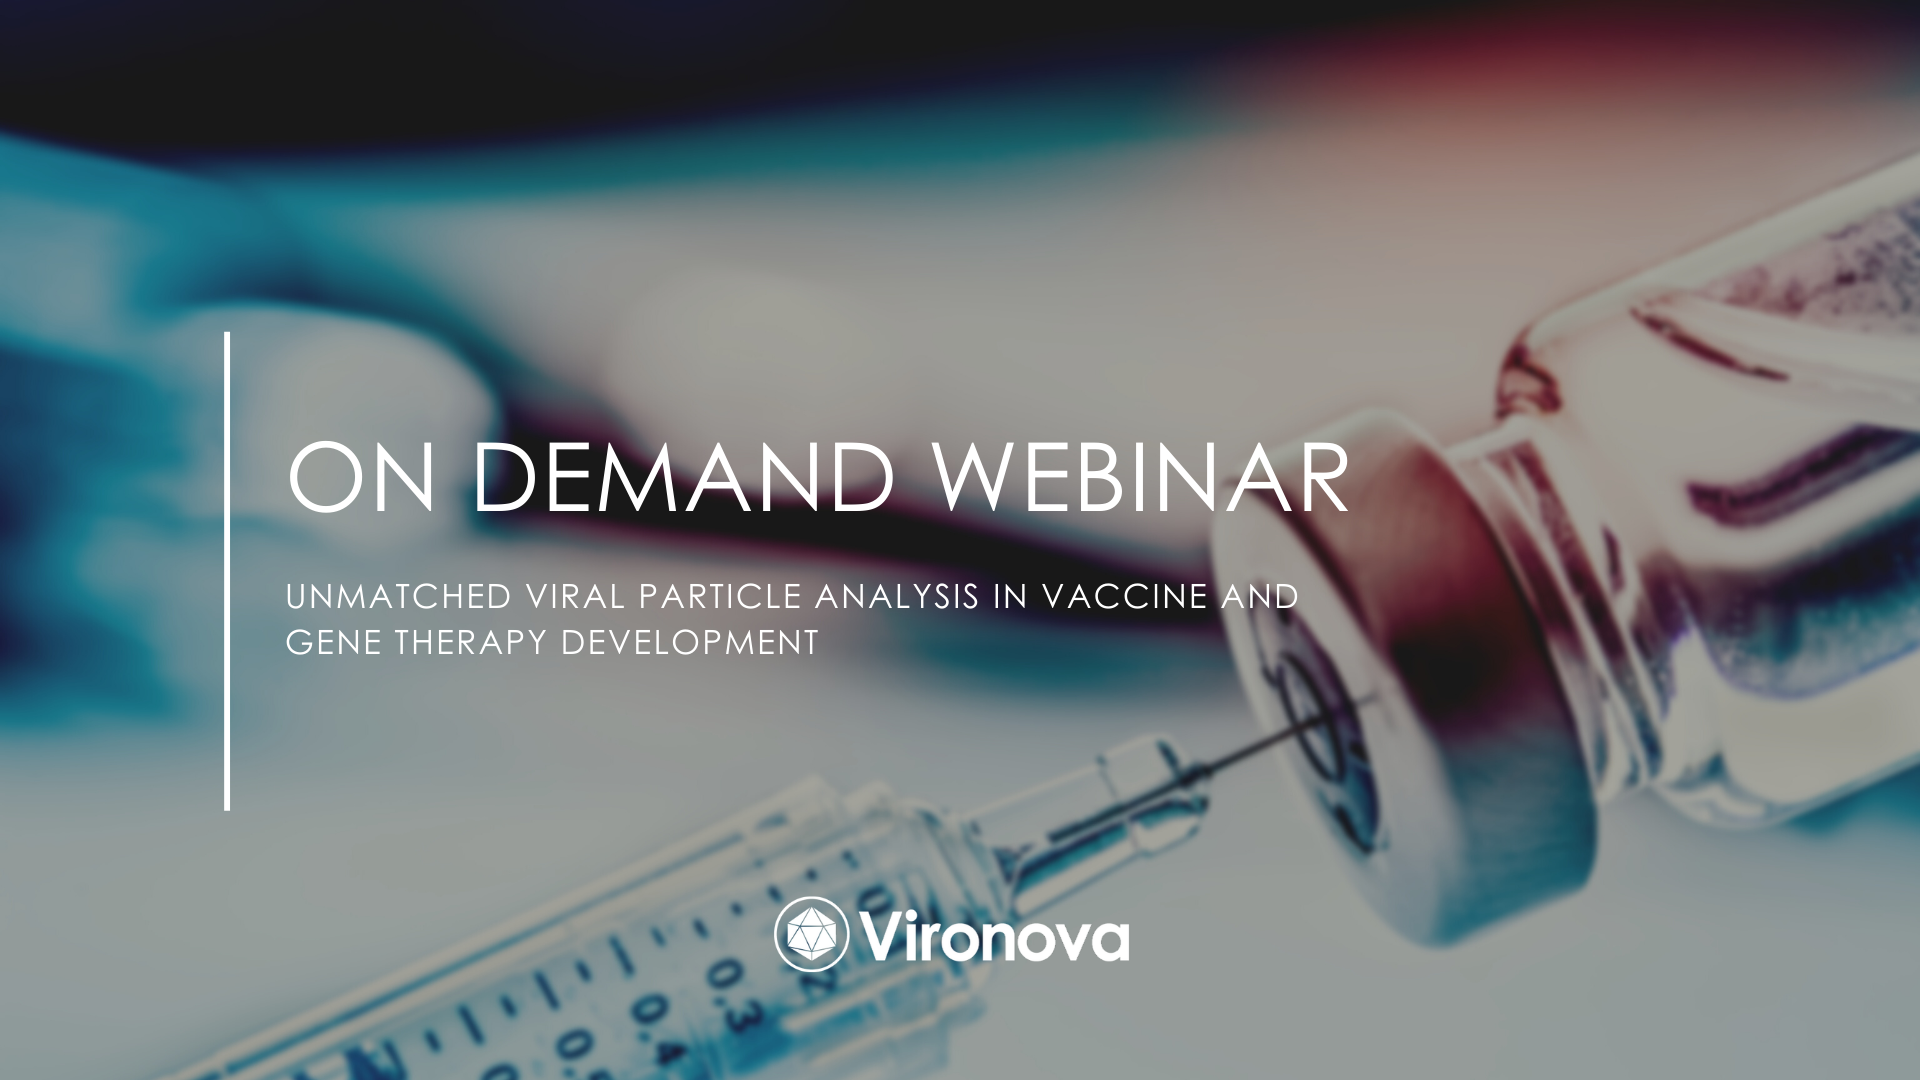 Vironova on demand webinar vaccines and gene therapy